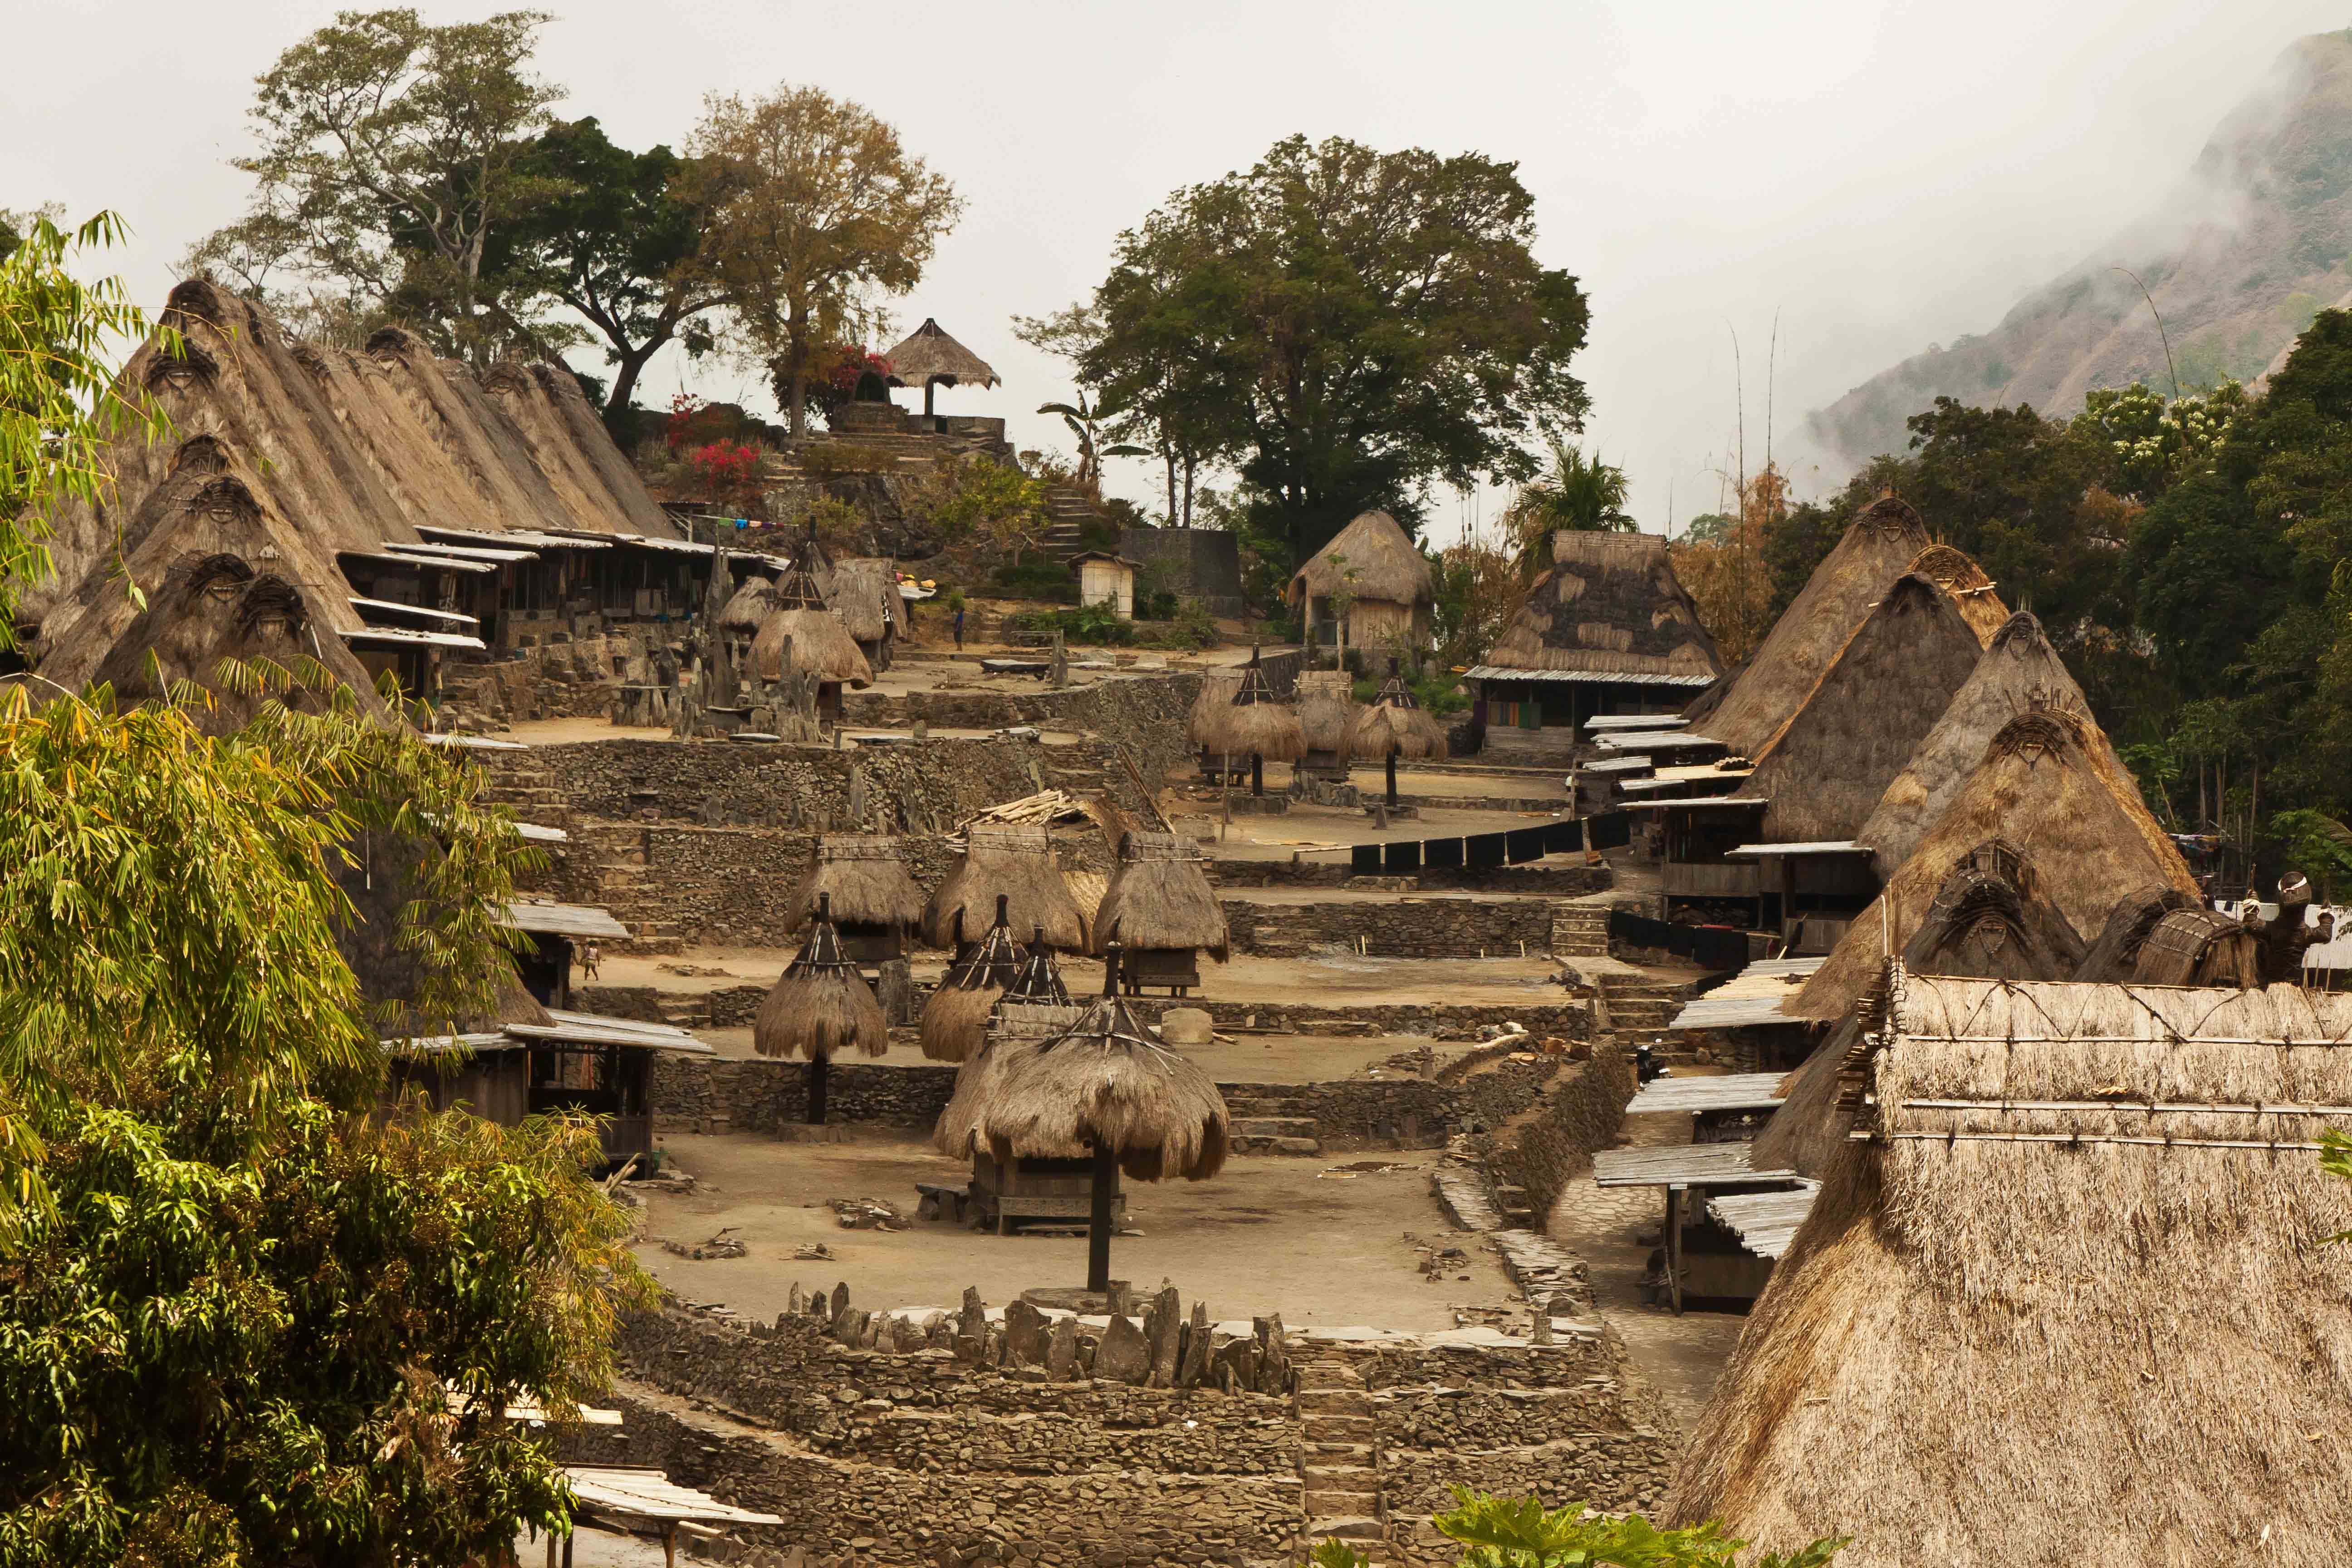 10 BEWILDERING TRIBAL VILLAGES IN INDONESIA (THAT WILL GIVE